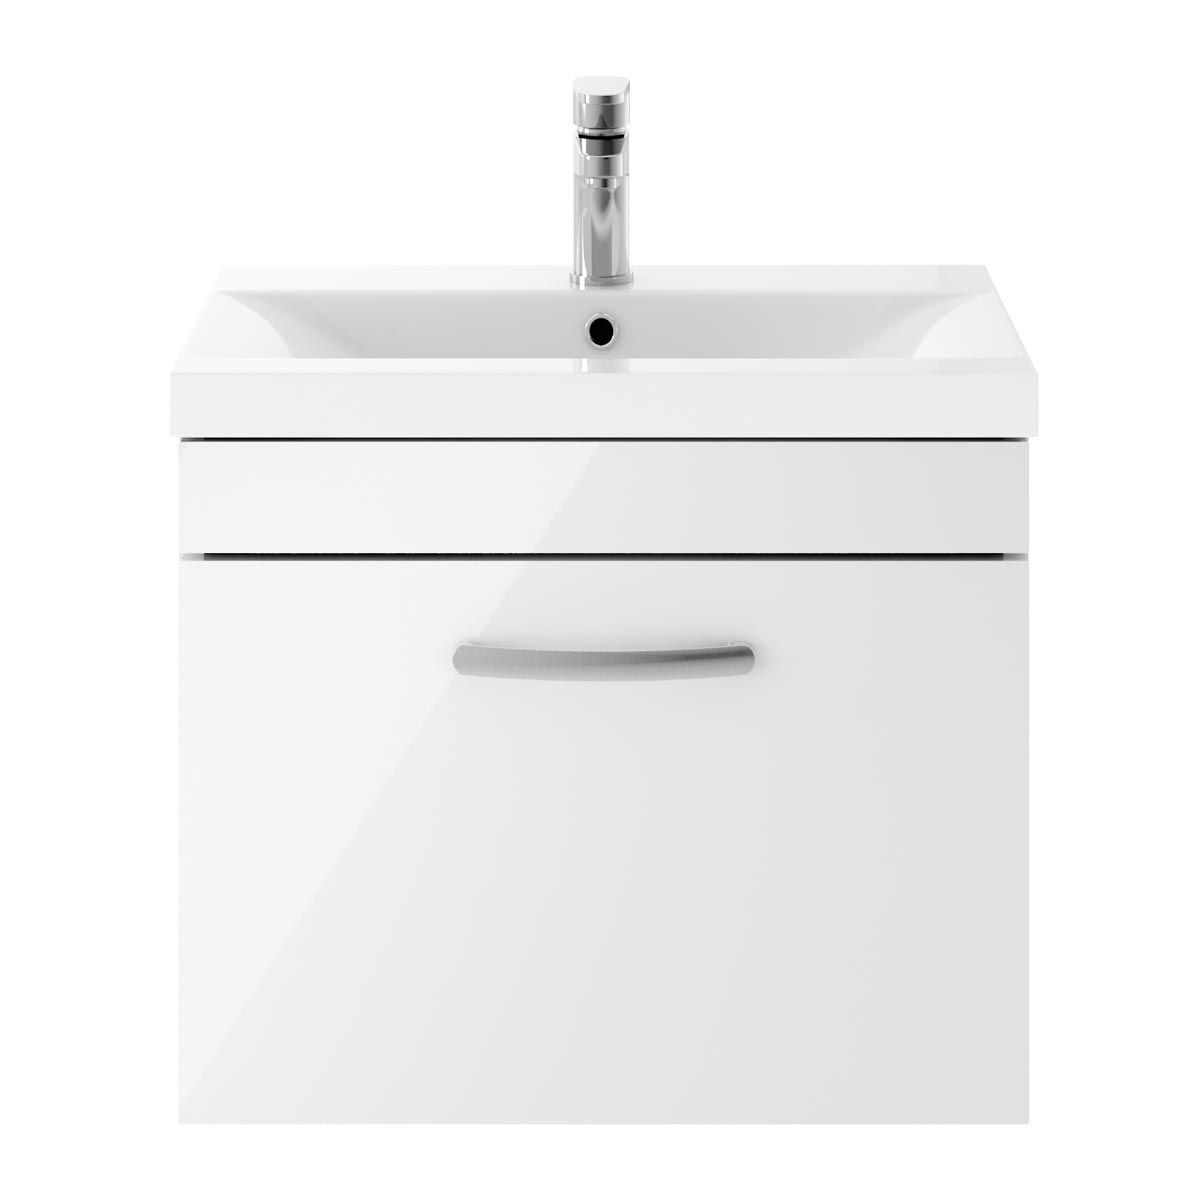 Nuie Athena Gloss White 1 Drawer Wall Hung Vanity Unit with 40mm Profile Basin 600mm